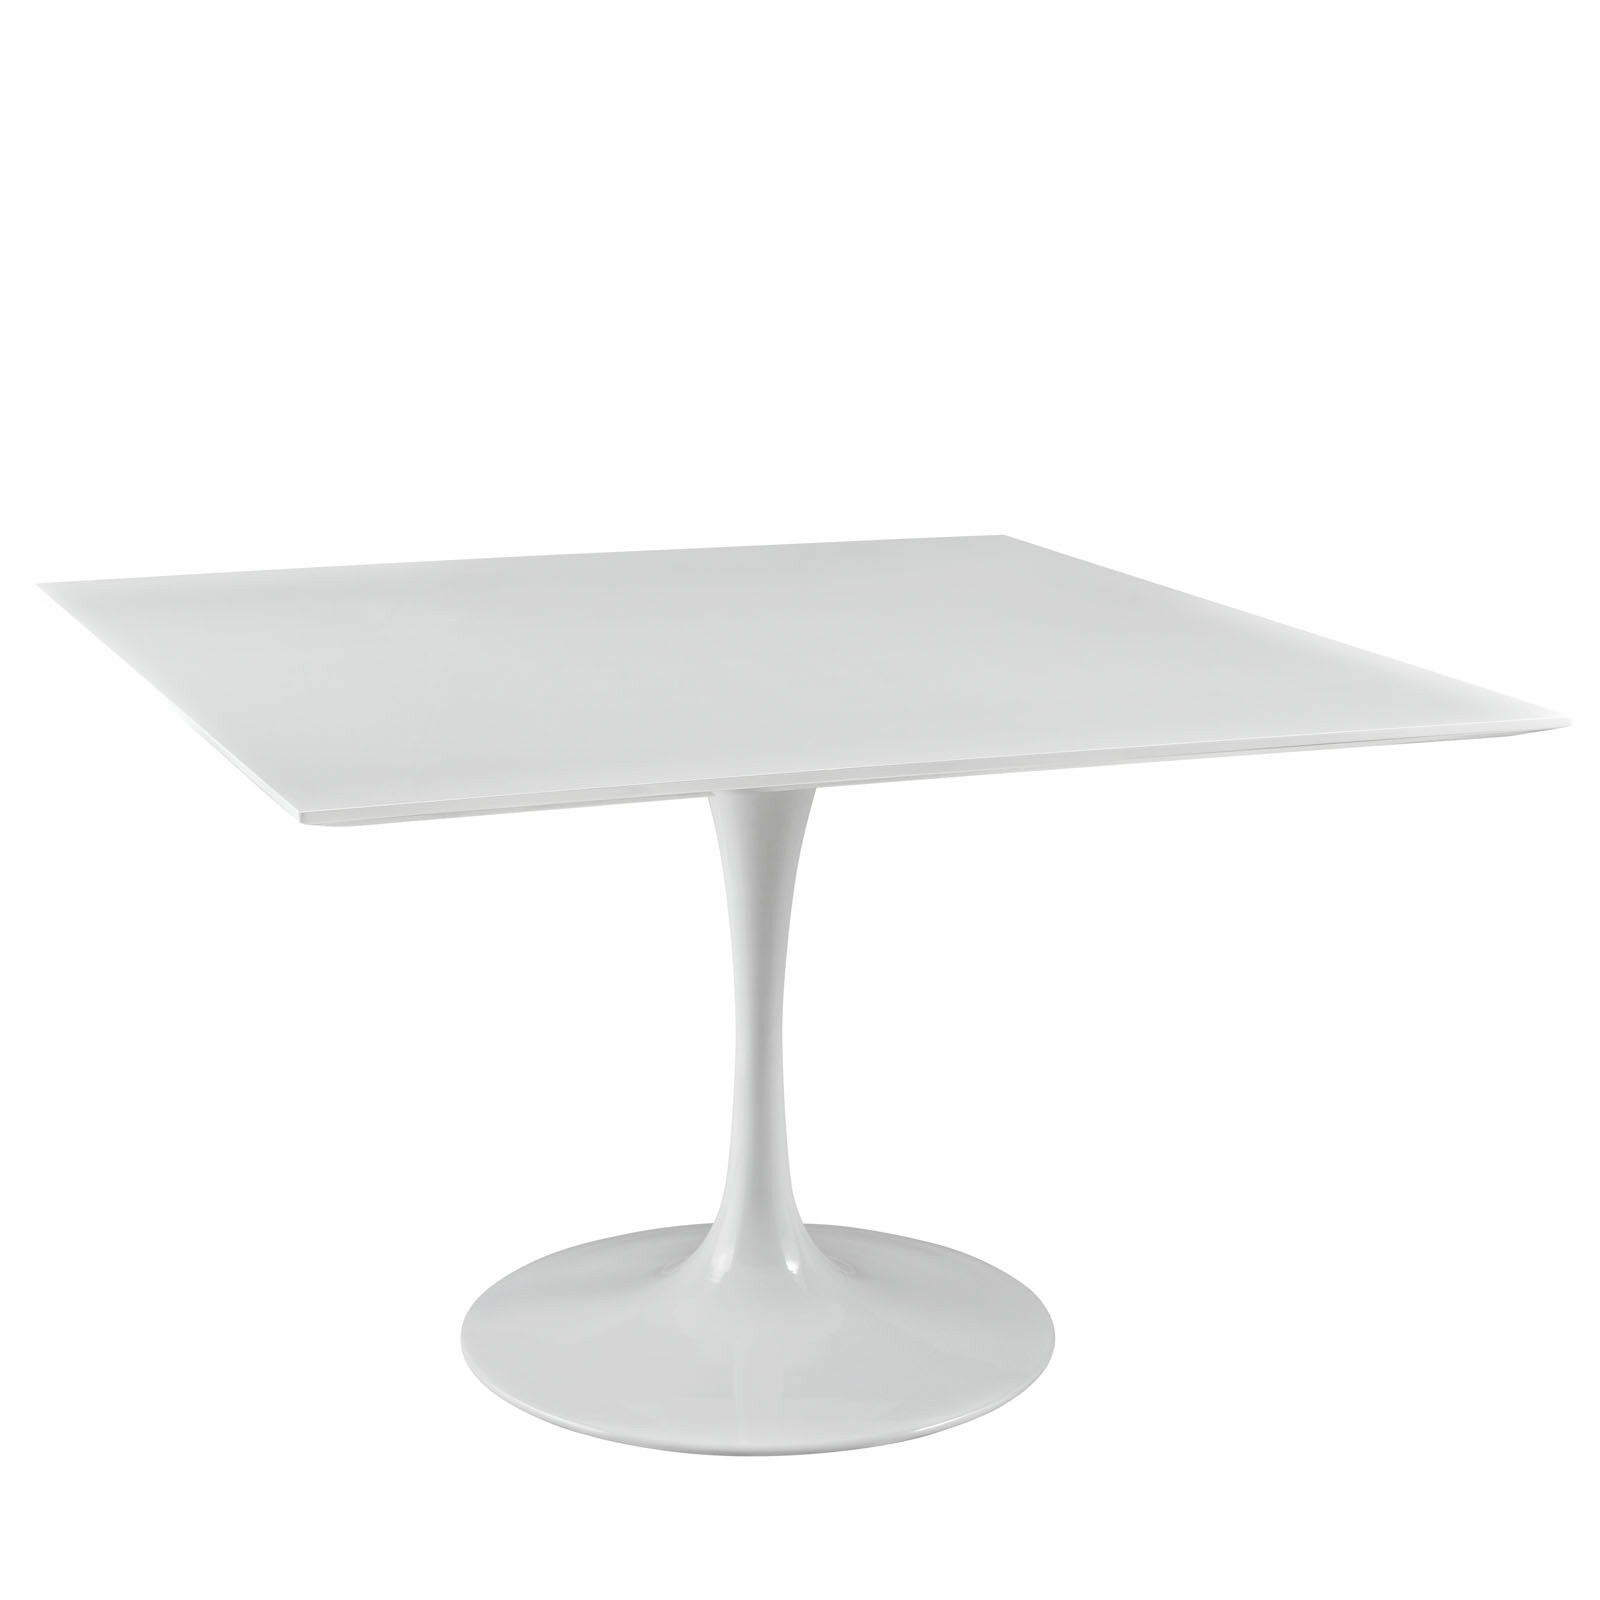 """Mid Century Modern 47"""" Square White Wood Top Metal With Most Popular Wilkesville 47'' Pedestal Dining Tables (View 8 of 15)"""